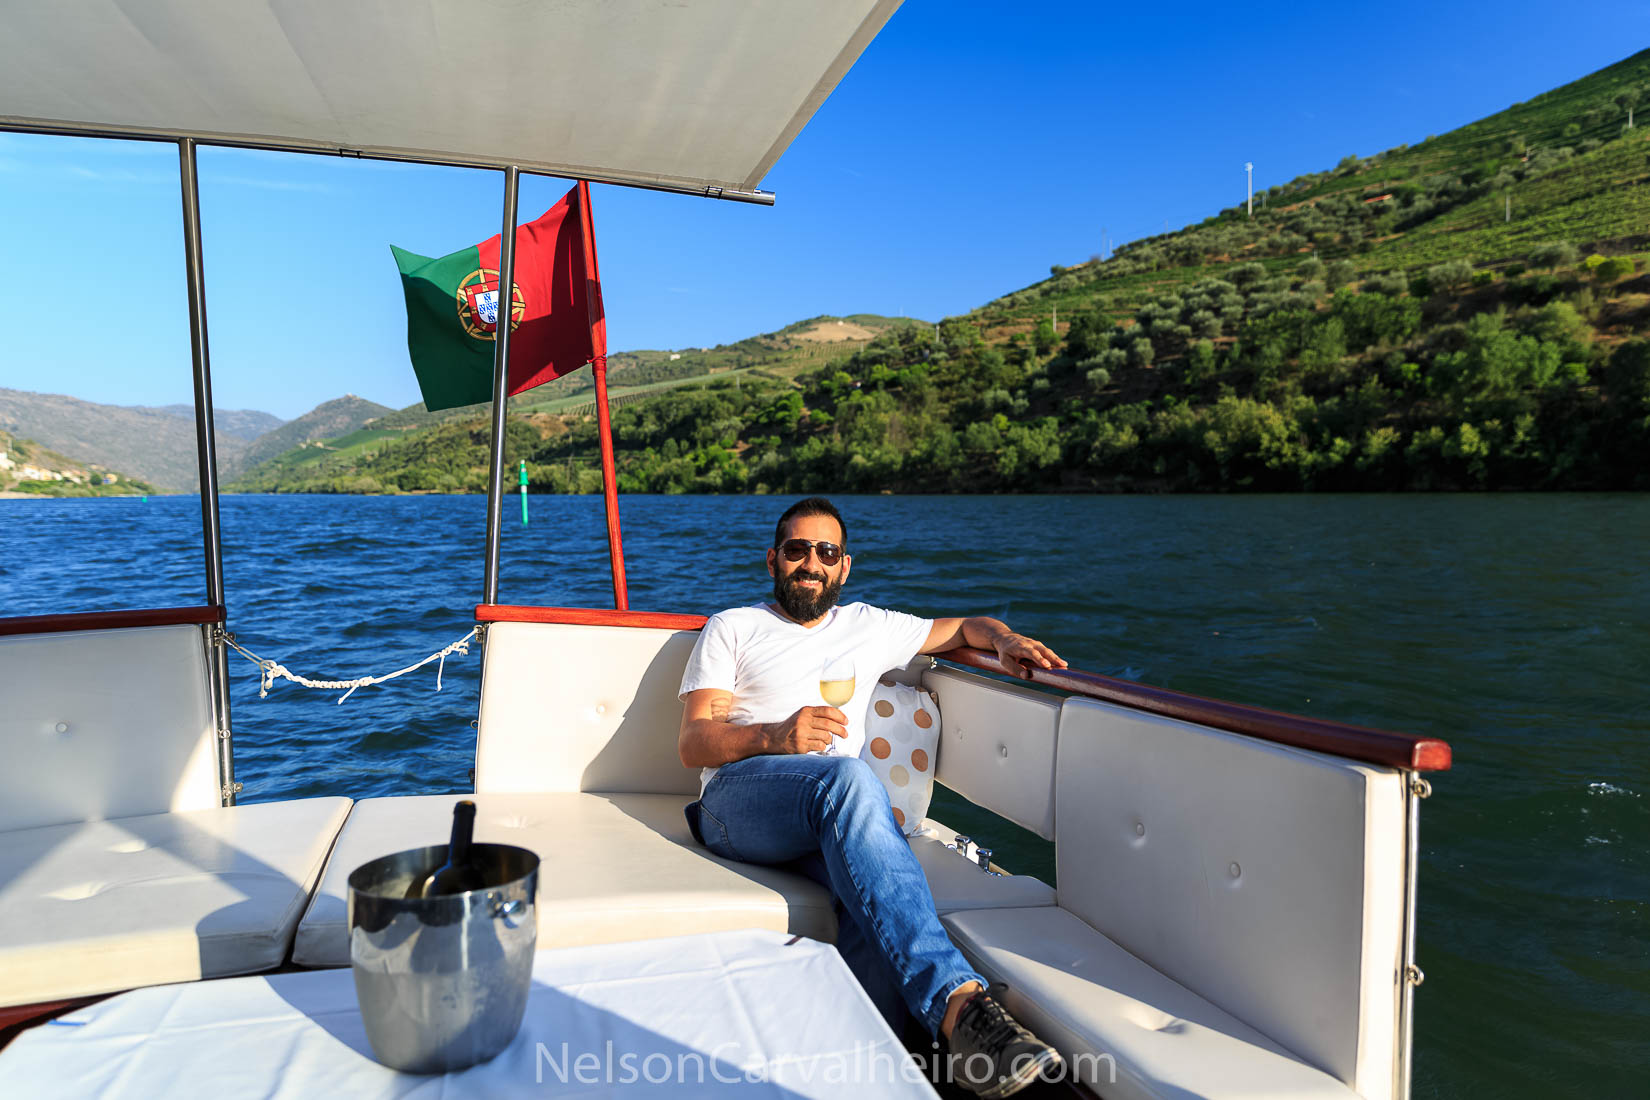 Nelson Carvalheiro Wine Cruise in Douro